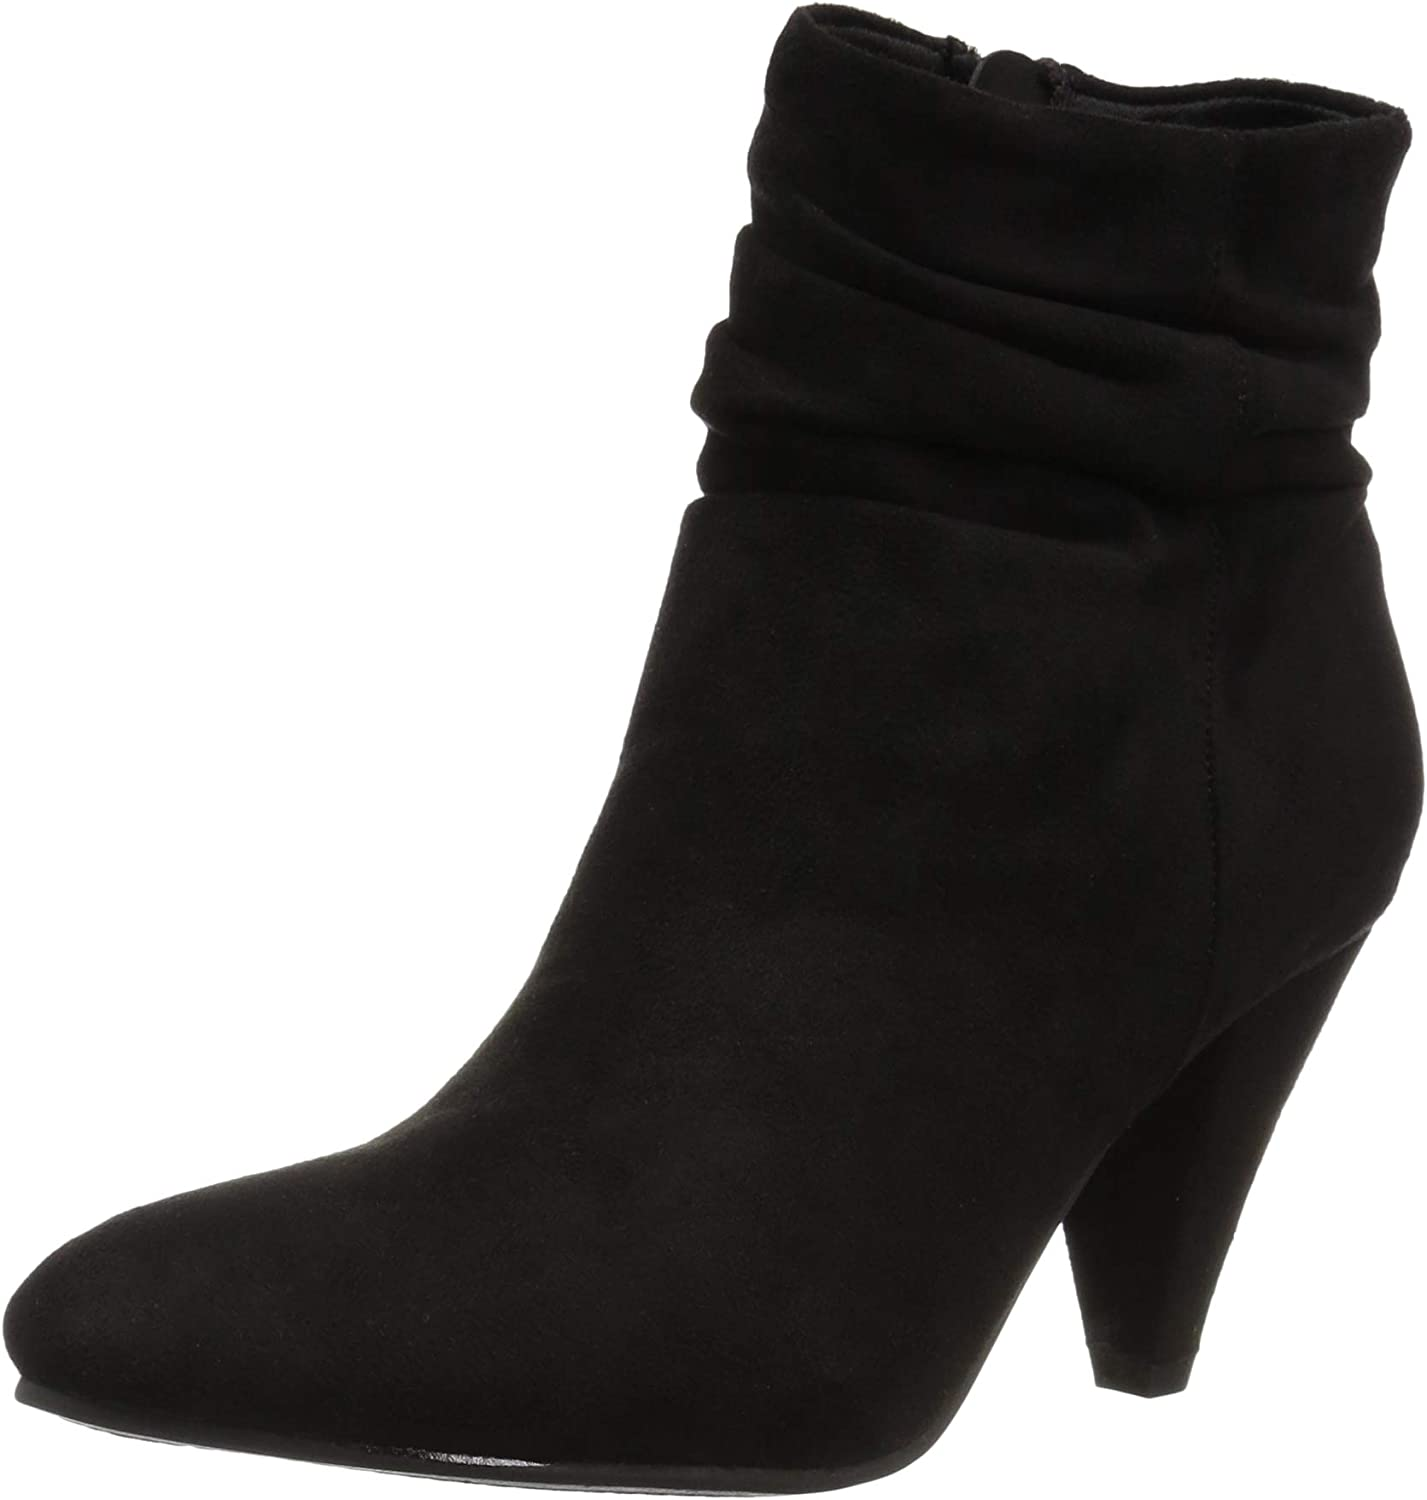 CL by Chinese Laundry Women's Nanda Ankle Boot